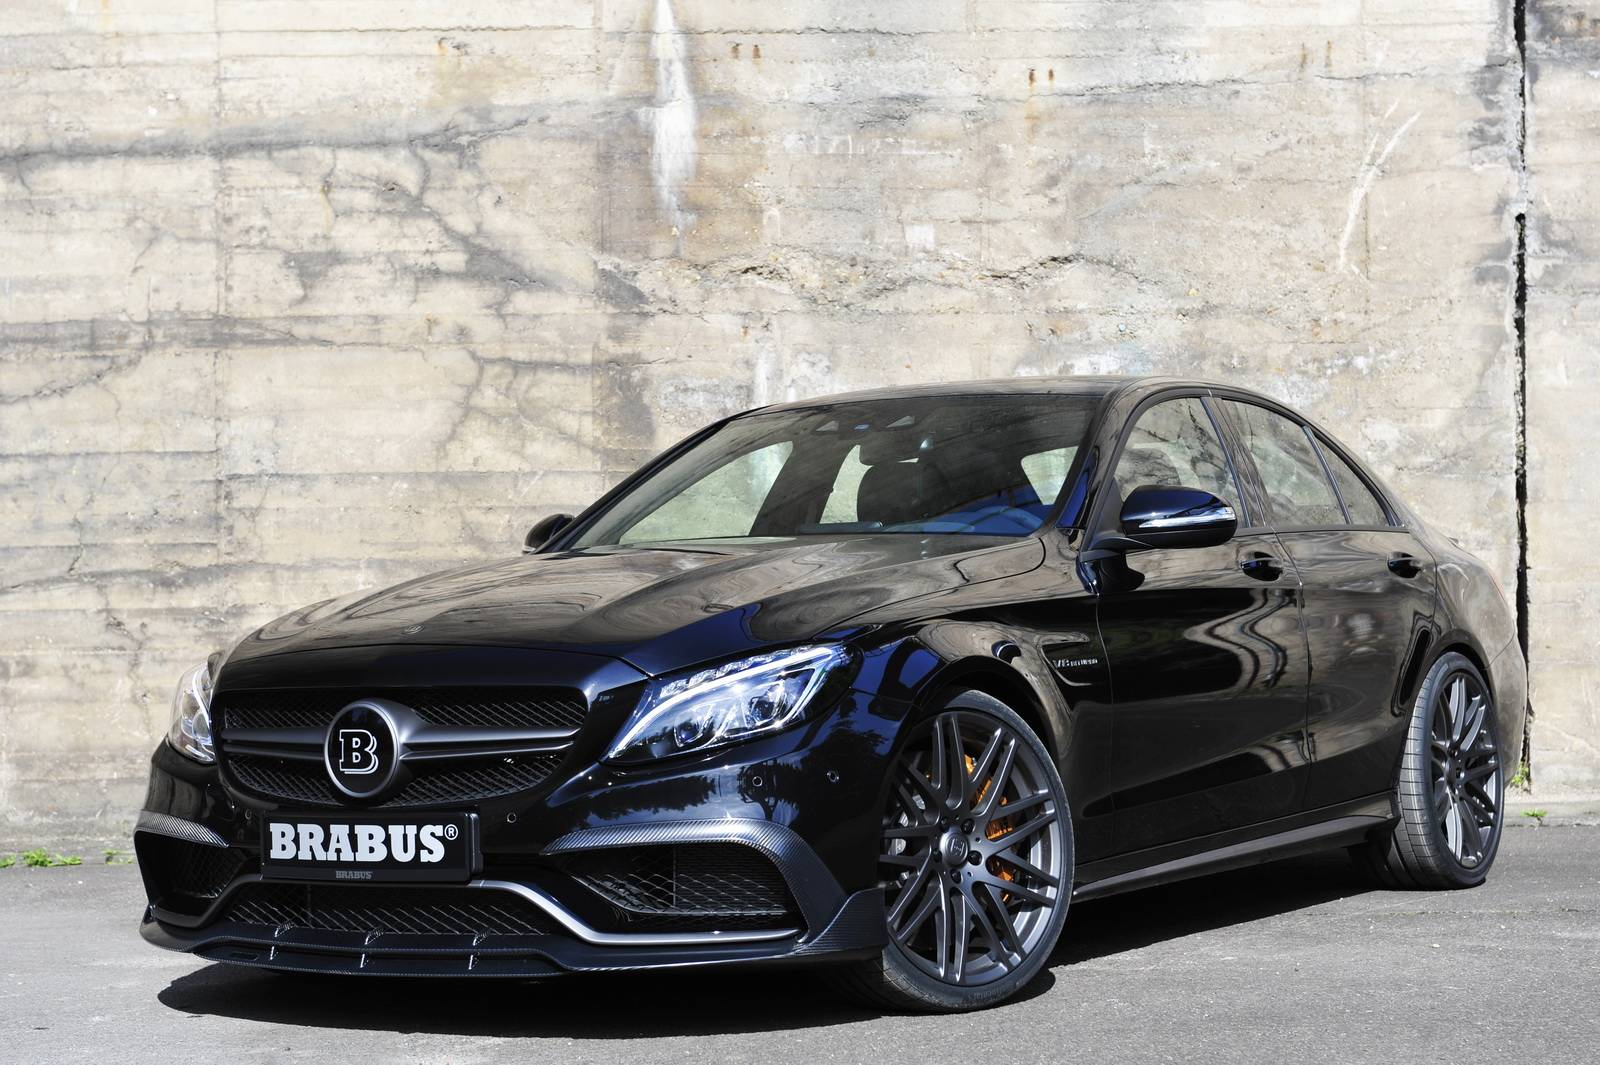 official 600hp brabus mercedes amg c63 s gtspirit. Black Bedroom Furniture Sets. Home Design Ideas